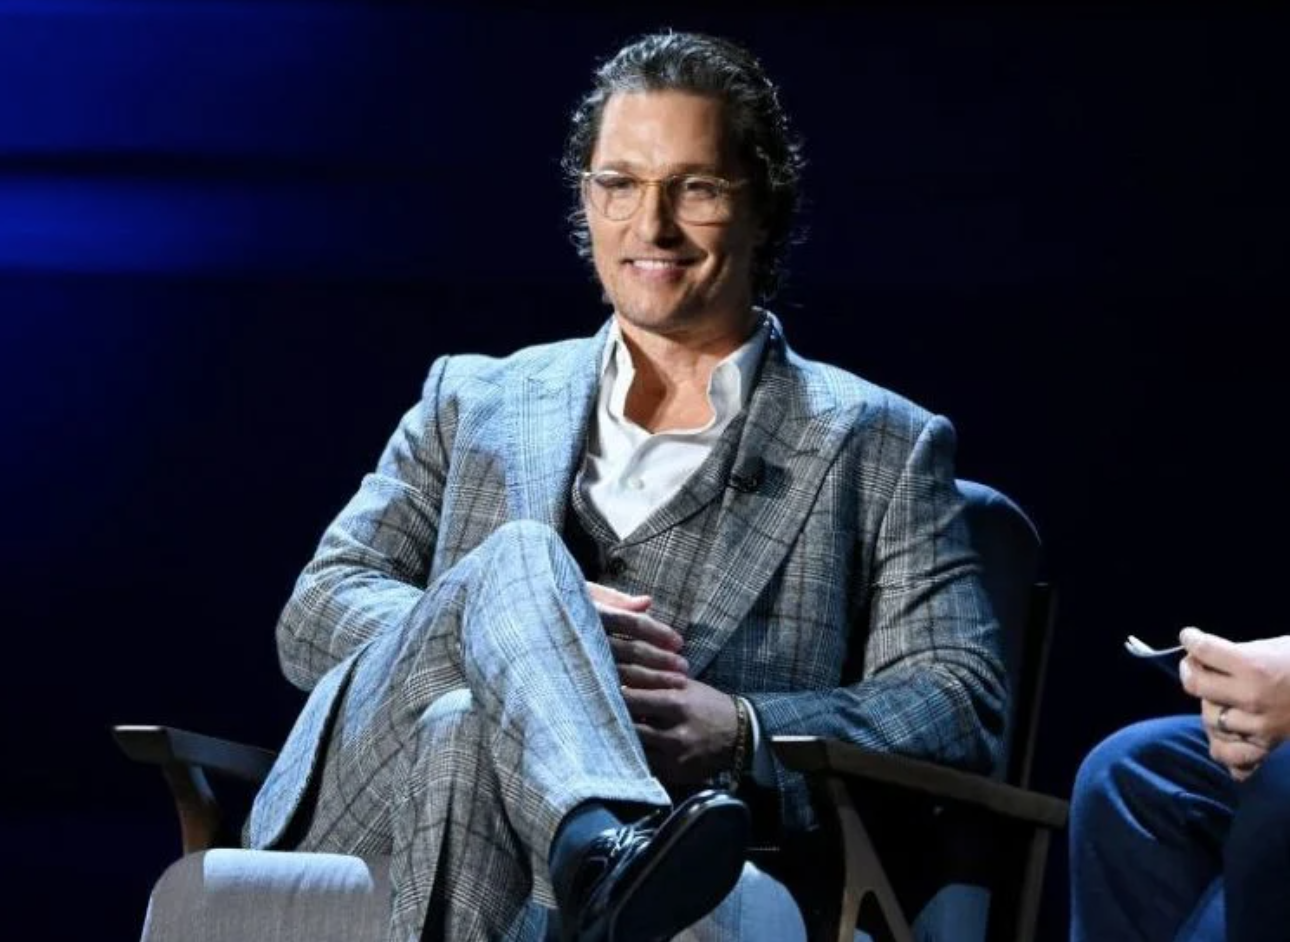 Matthew McConaughey Just Got Major Endorsement For Governor From Ted Cruz (Asking Him Not to Run), Alright Alright!